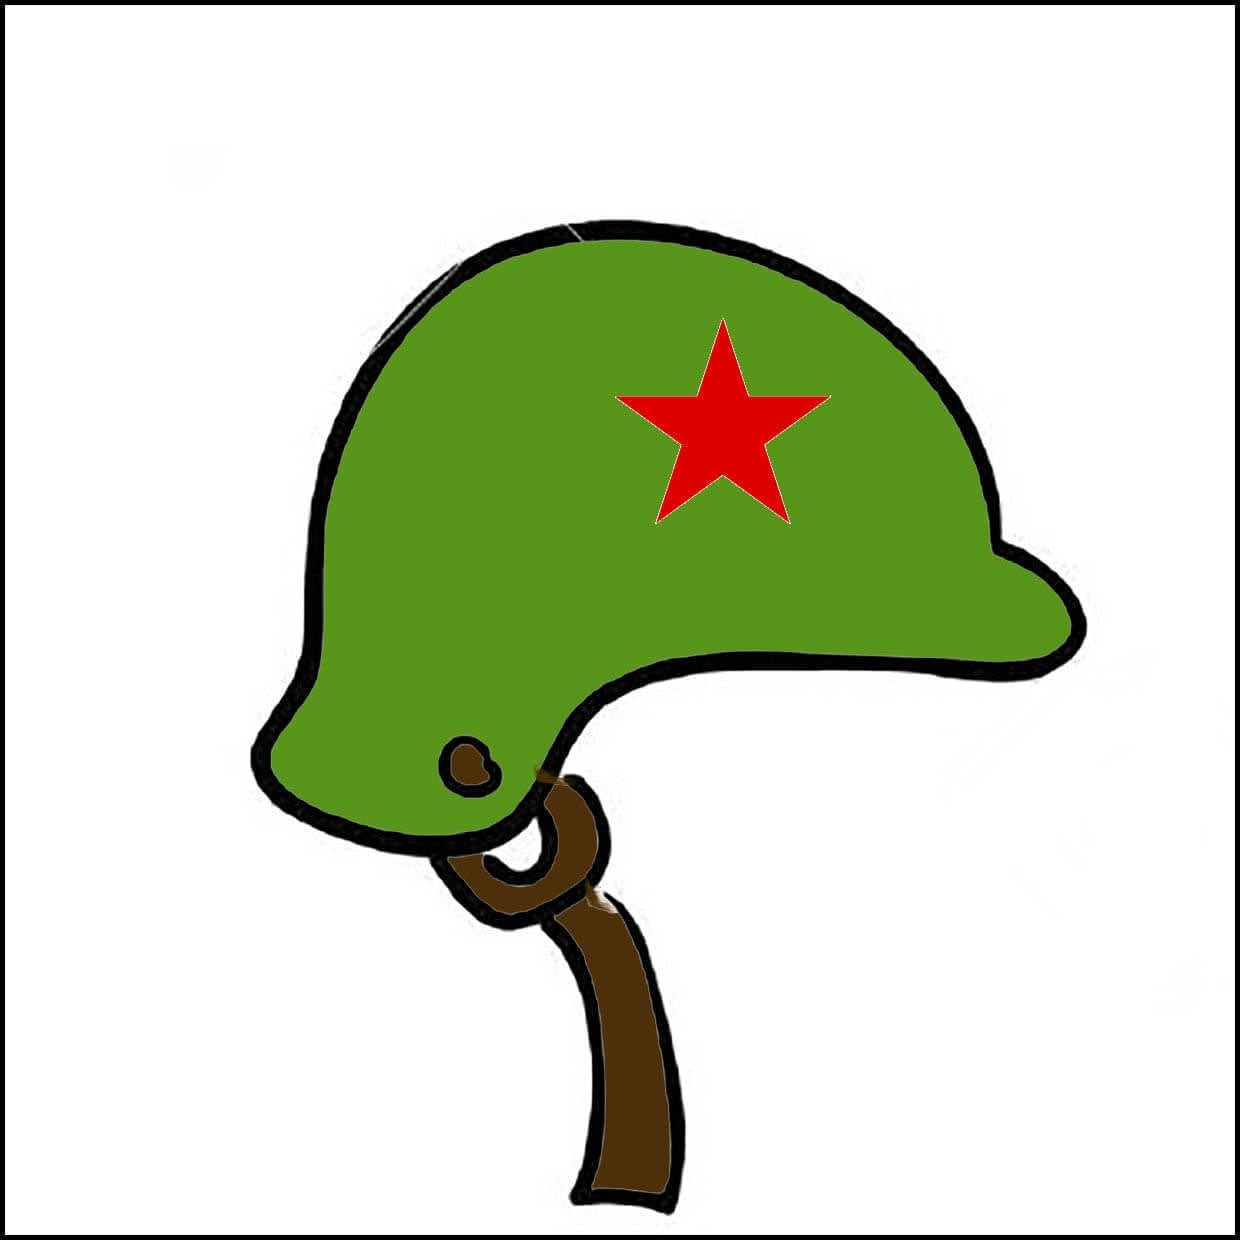 Picture a soldier's helmet